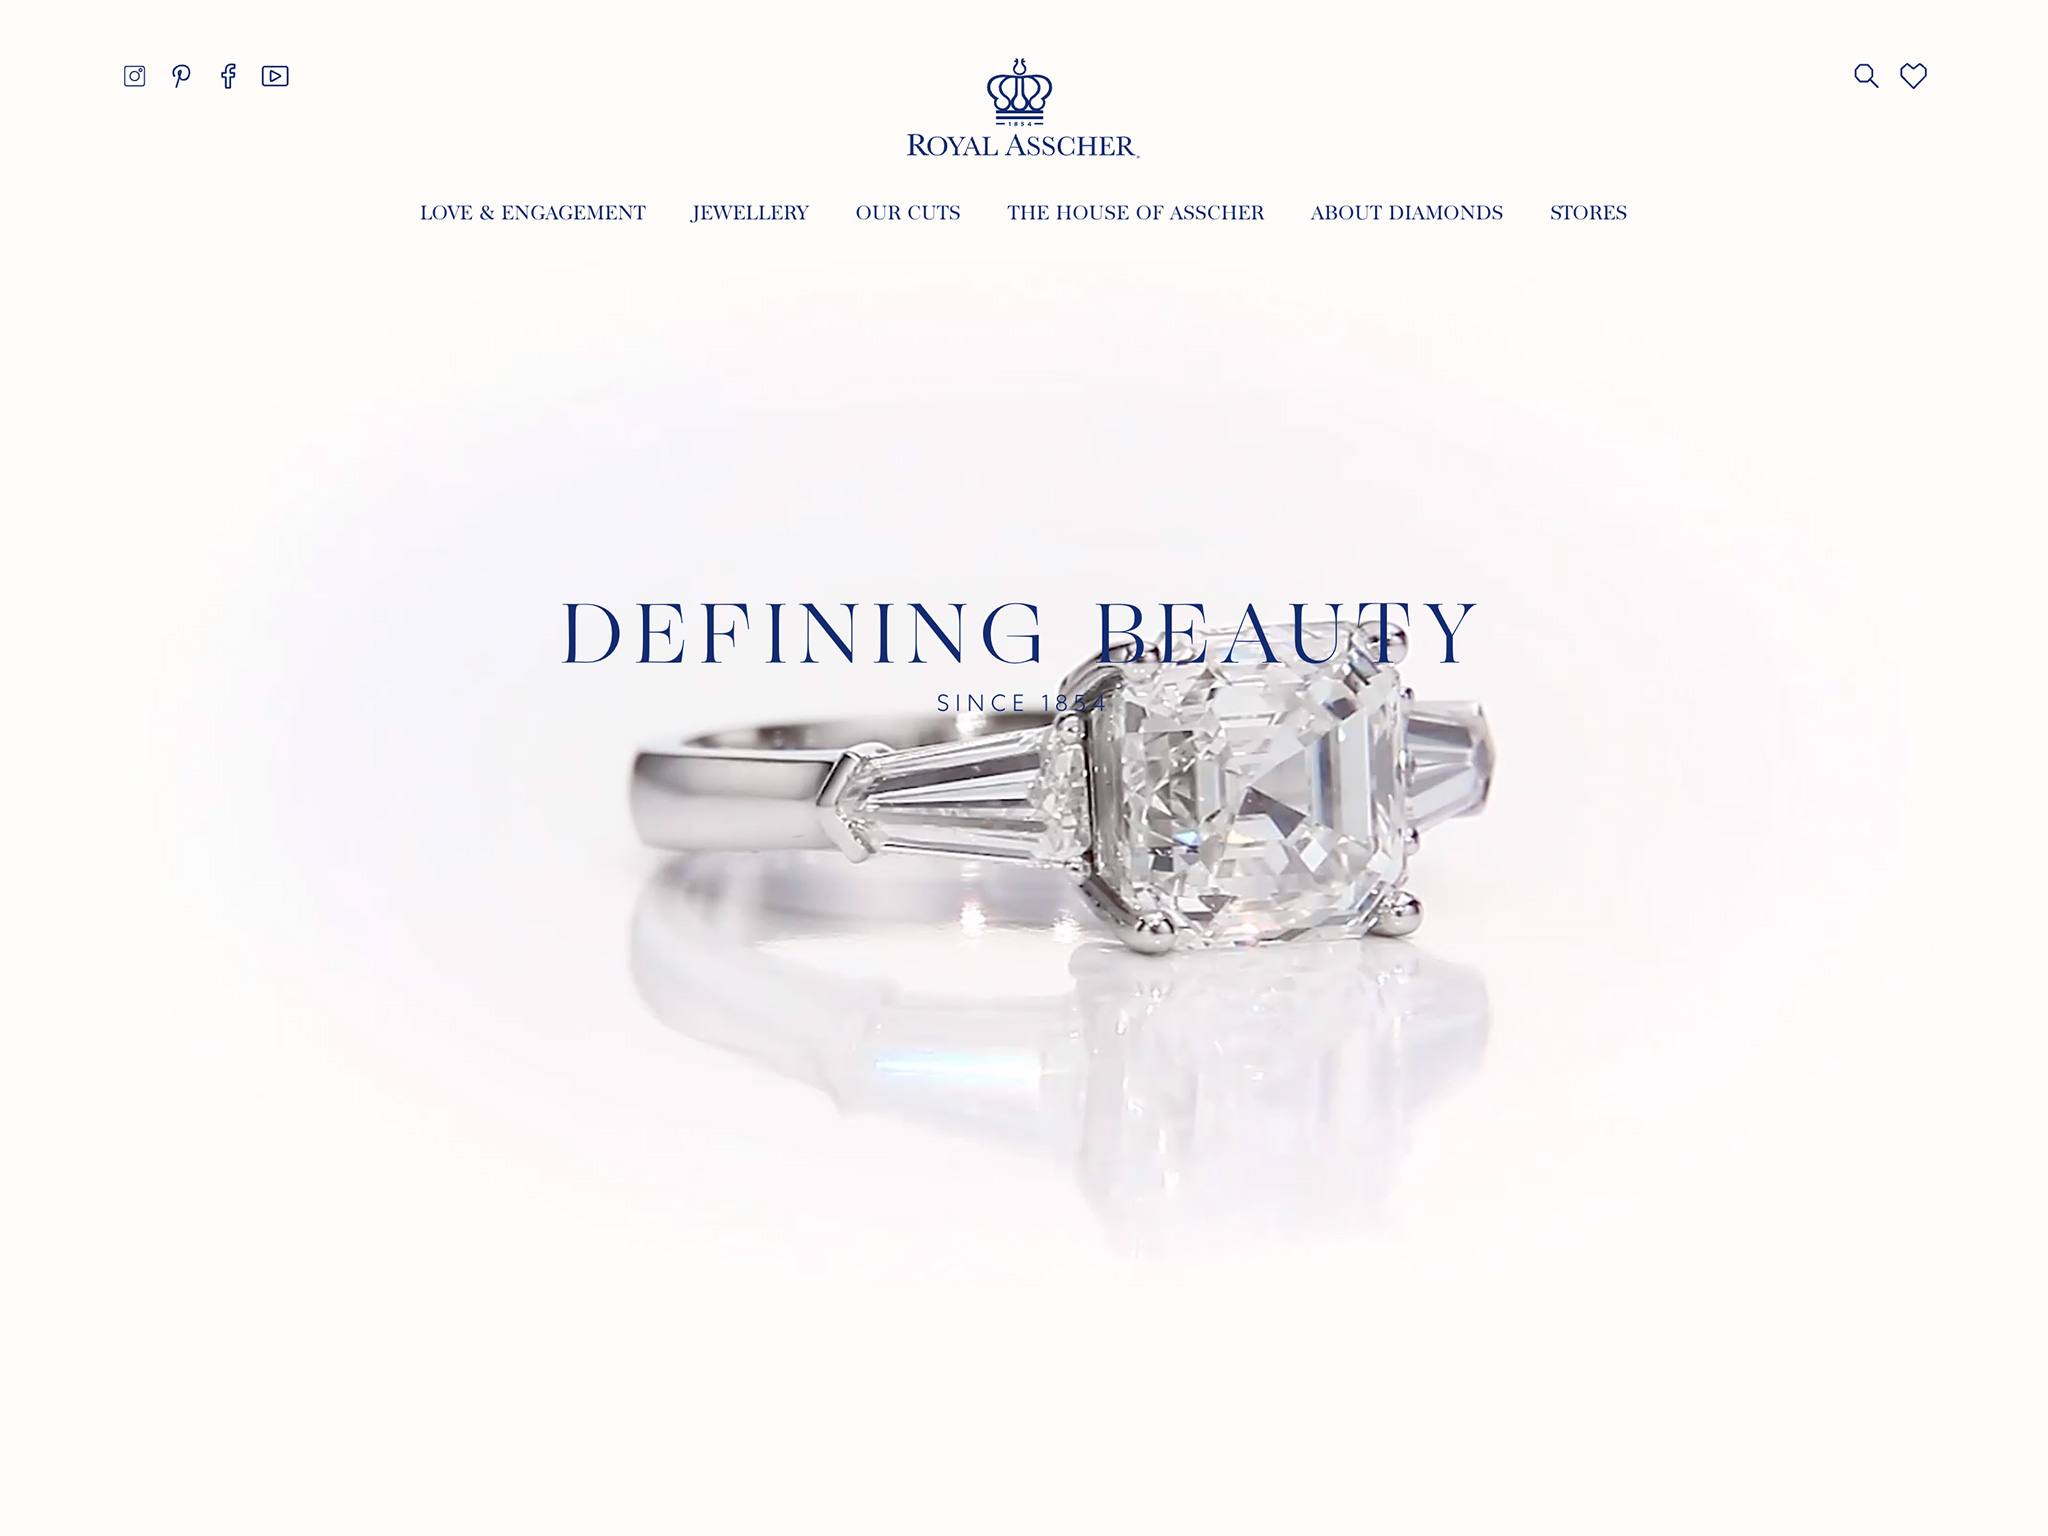 Royal Asscher – Diamonds since 1854